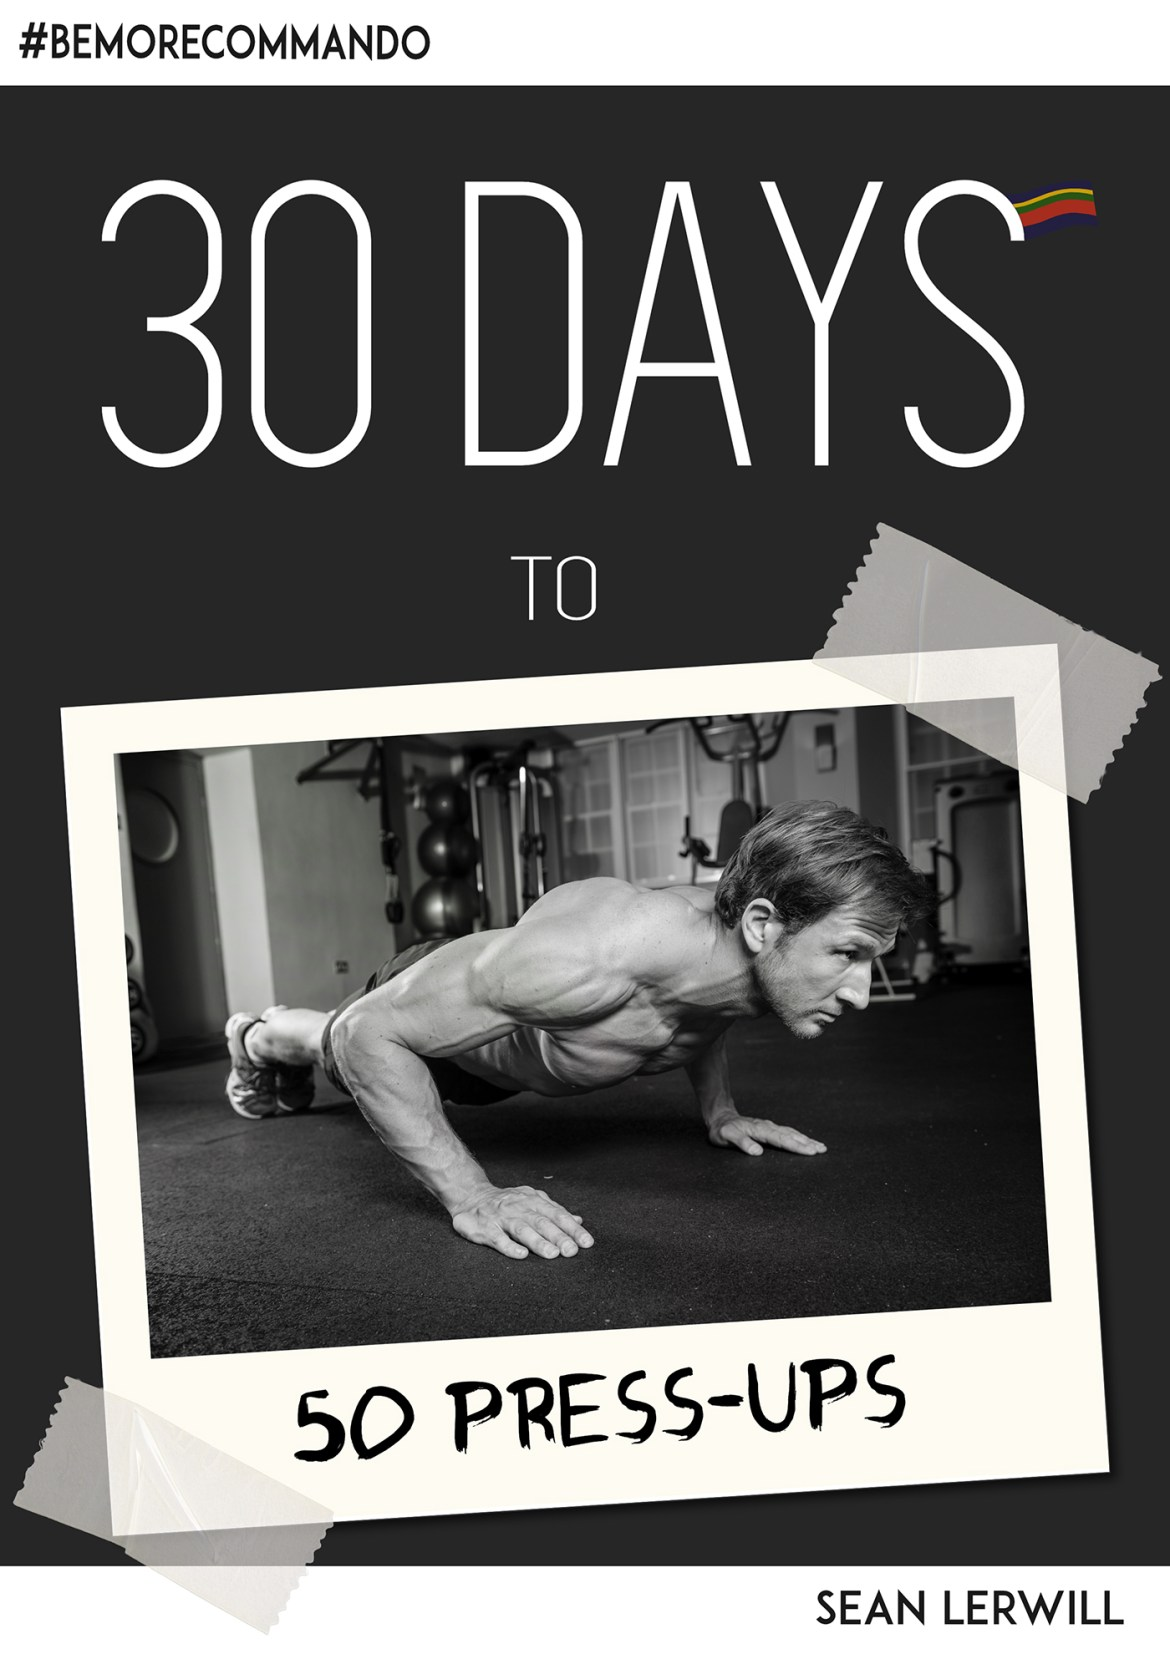 30 Days to 50 Press-ups